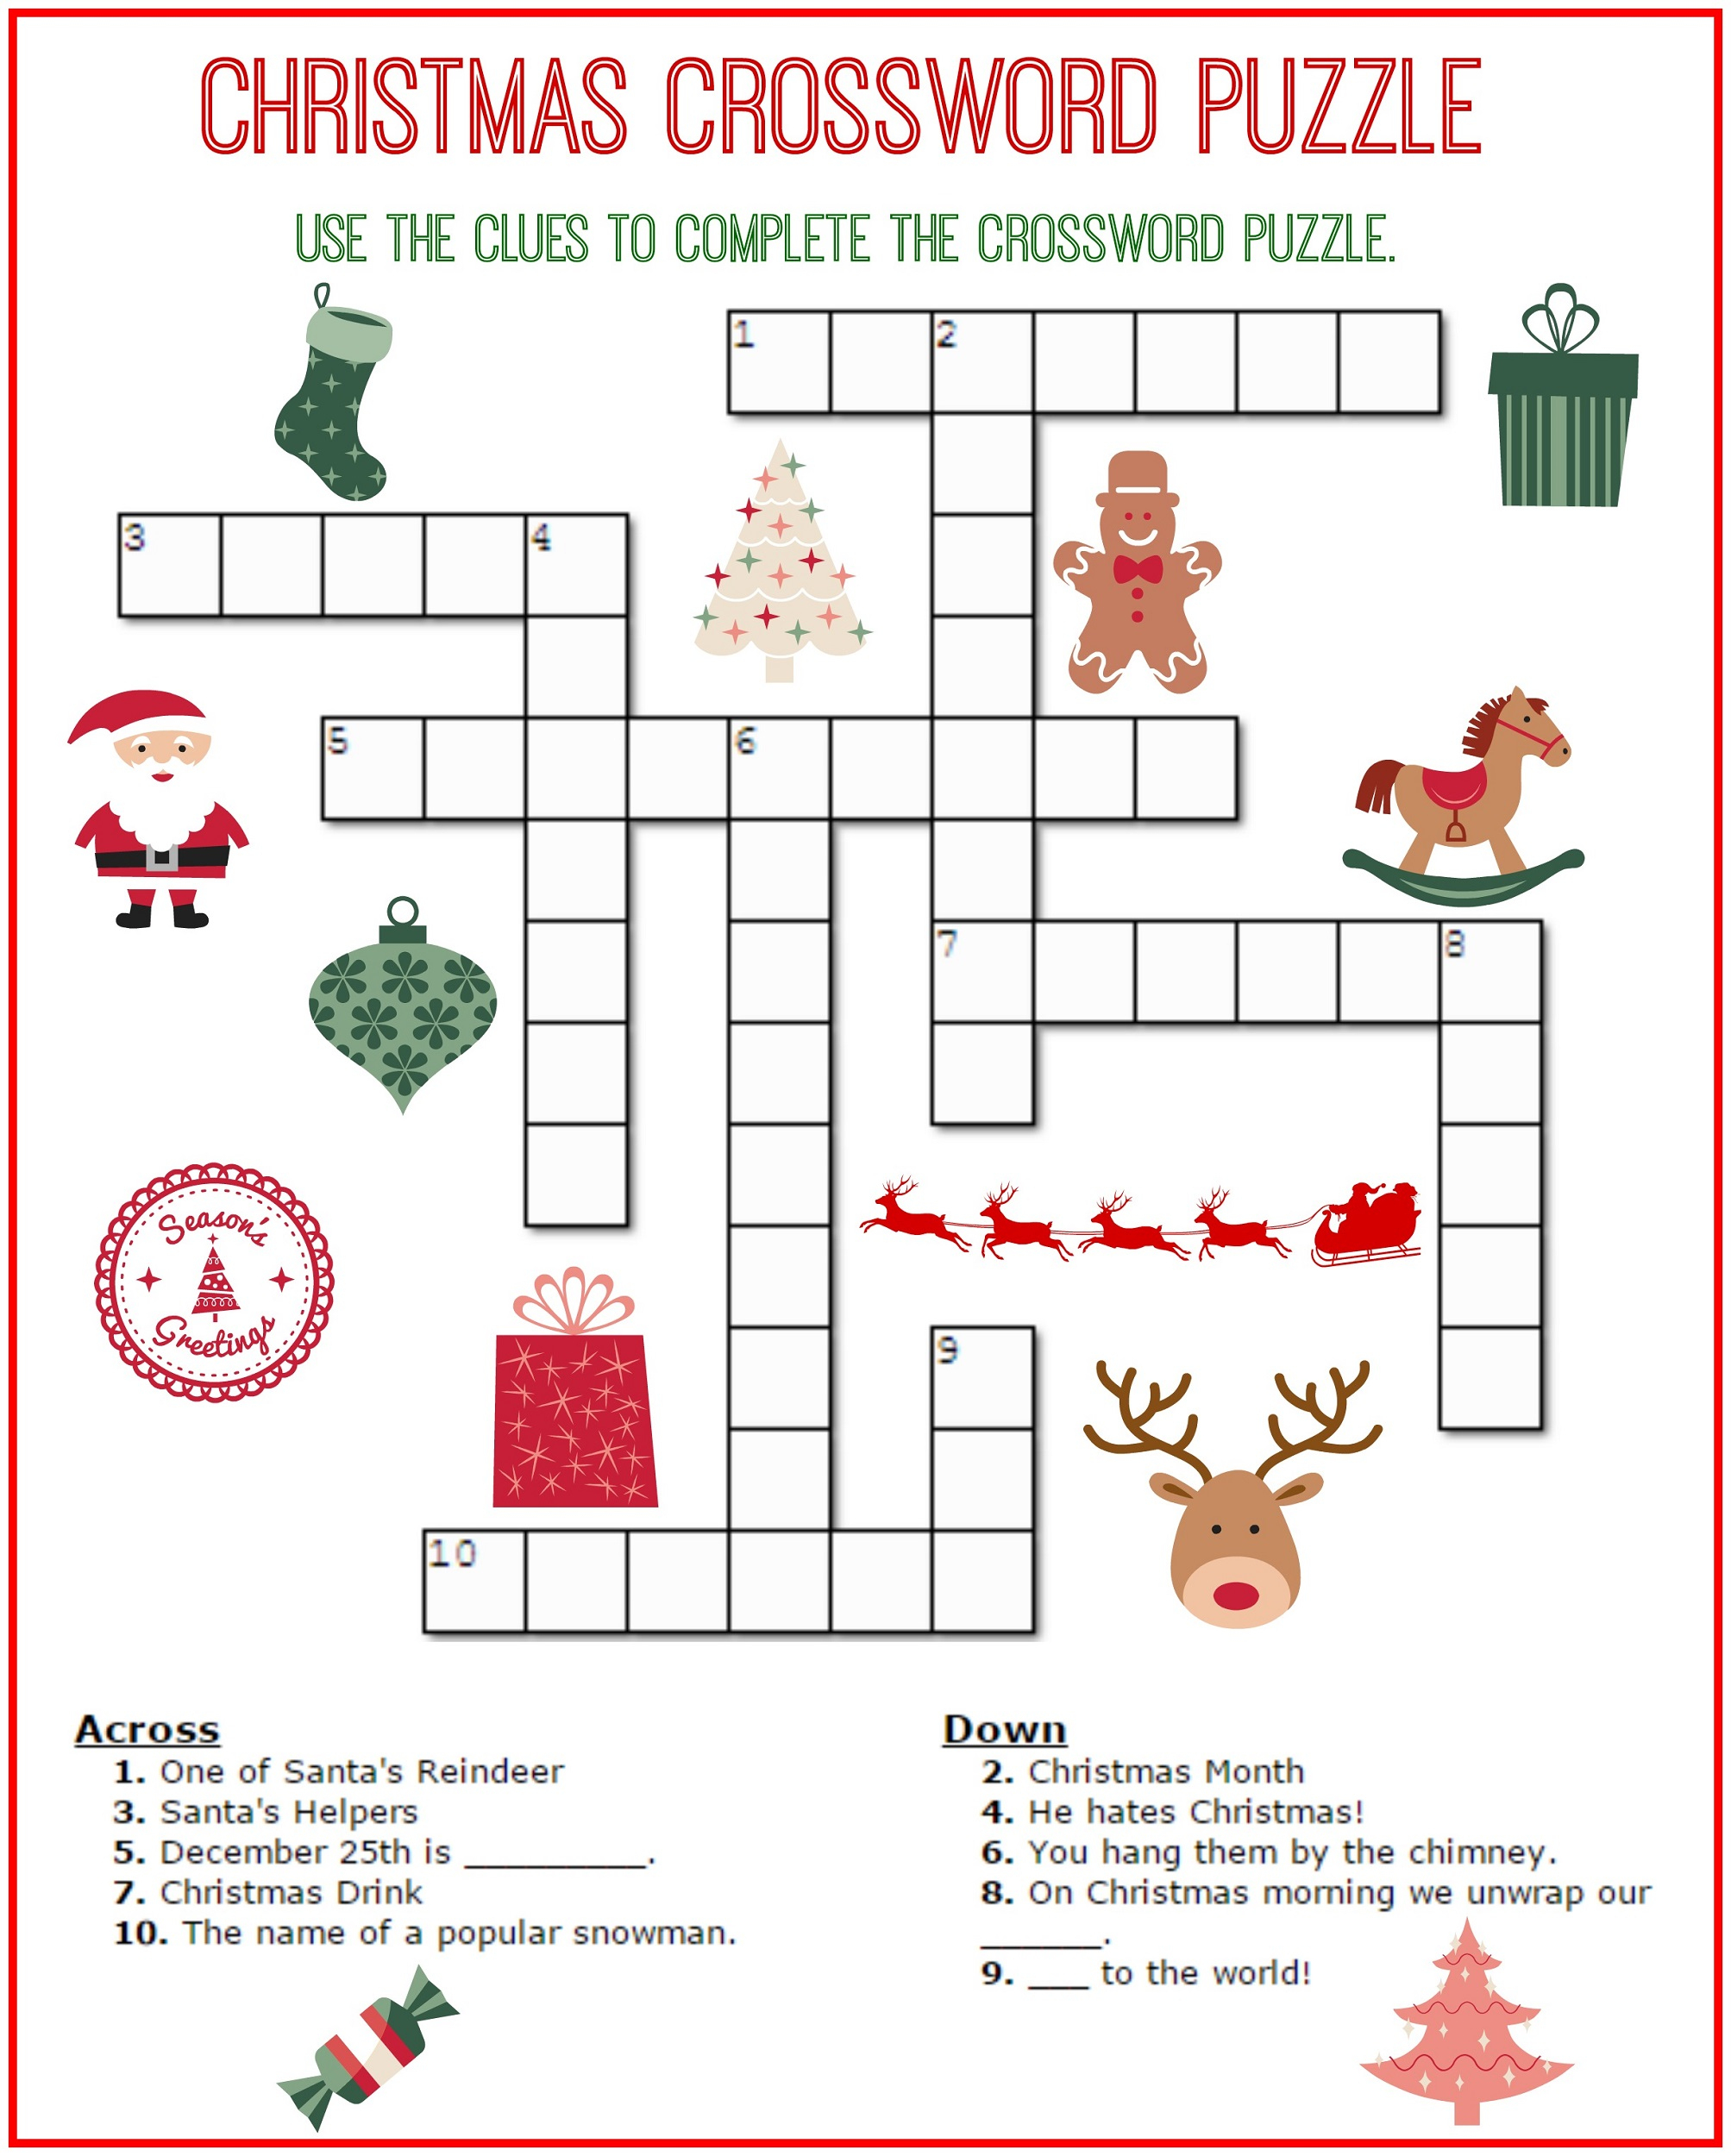 Crossword Puzzle Kids Printable 2017 | Kiddo Shelter - Printable Crossword Puzzles For Kids